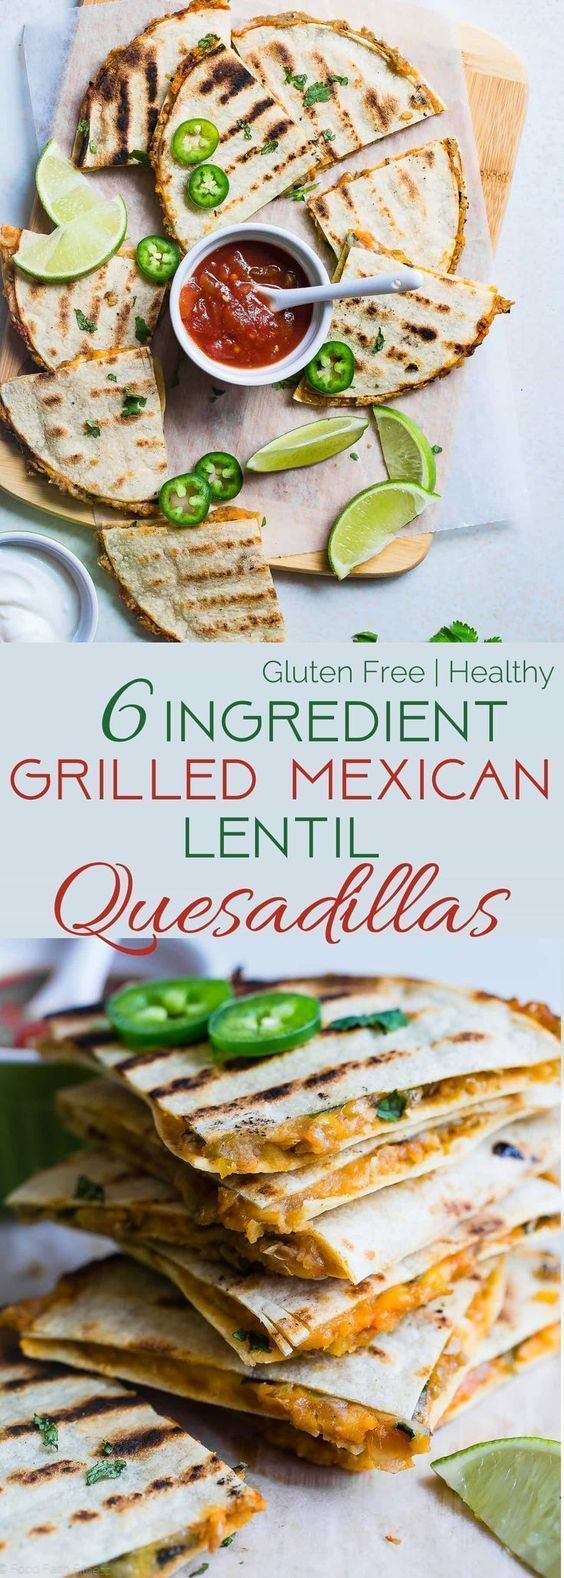 Grilled Mexican Quesadilla Recipe with Lentils| Food Faith Fitness -  Grilled Mexican Lentil Quesadi...